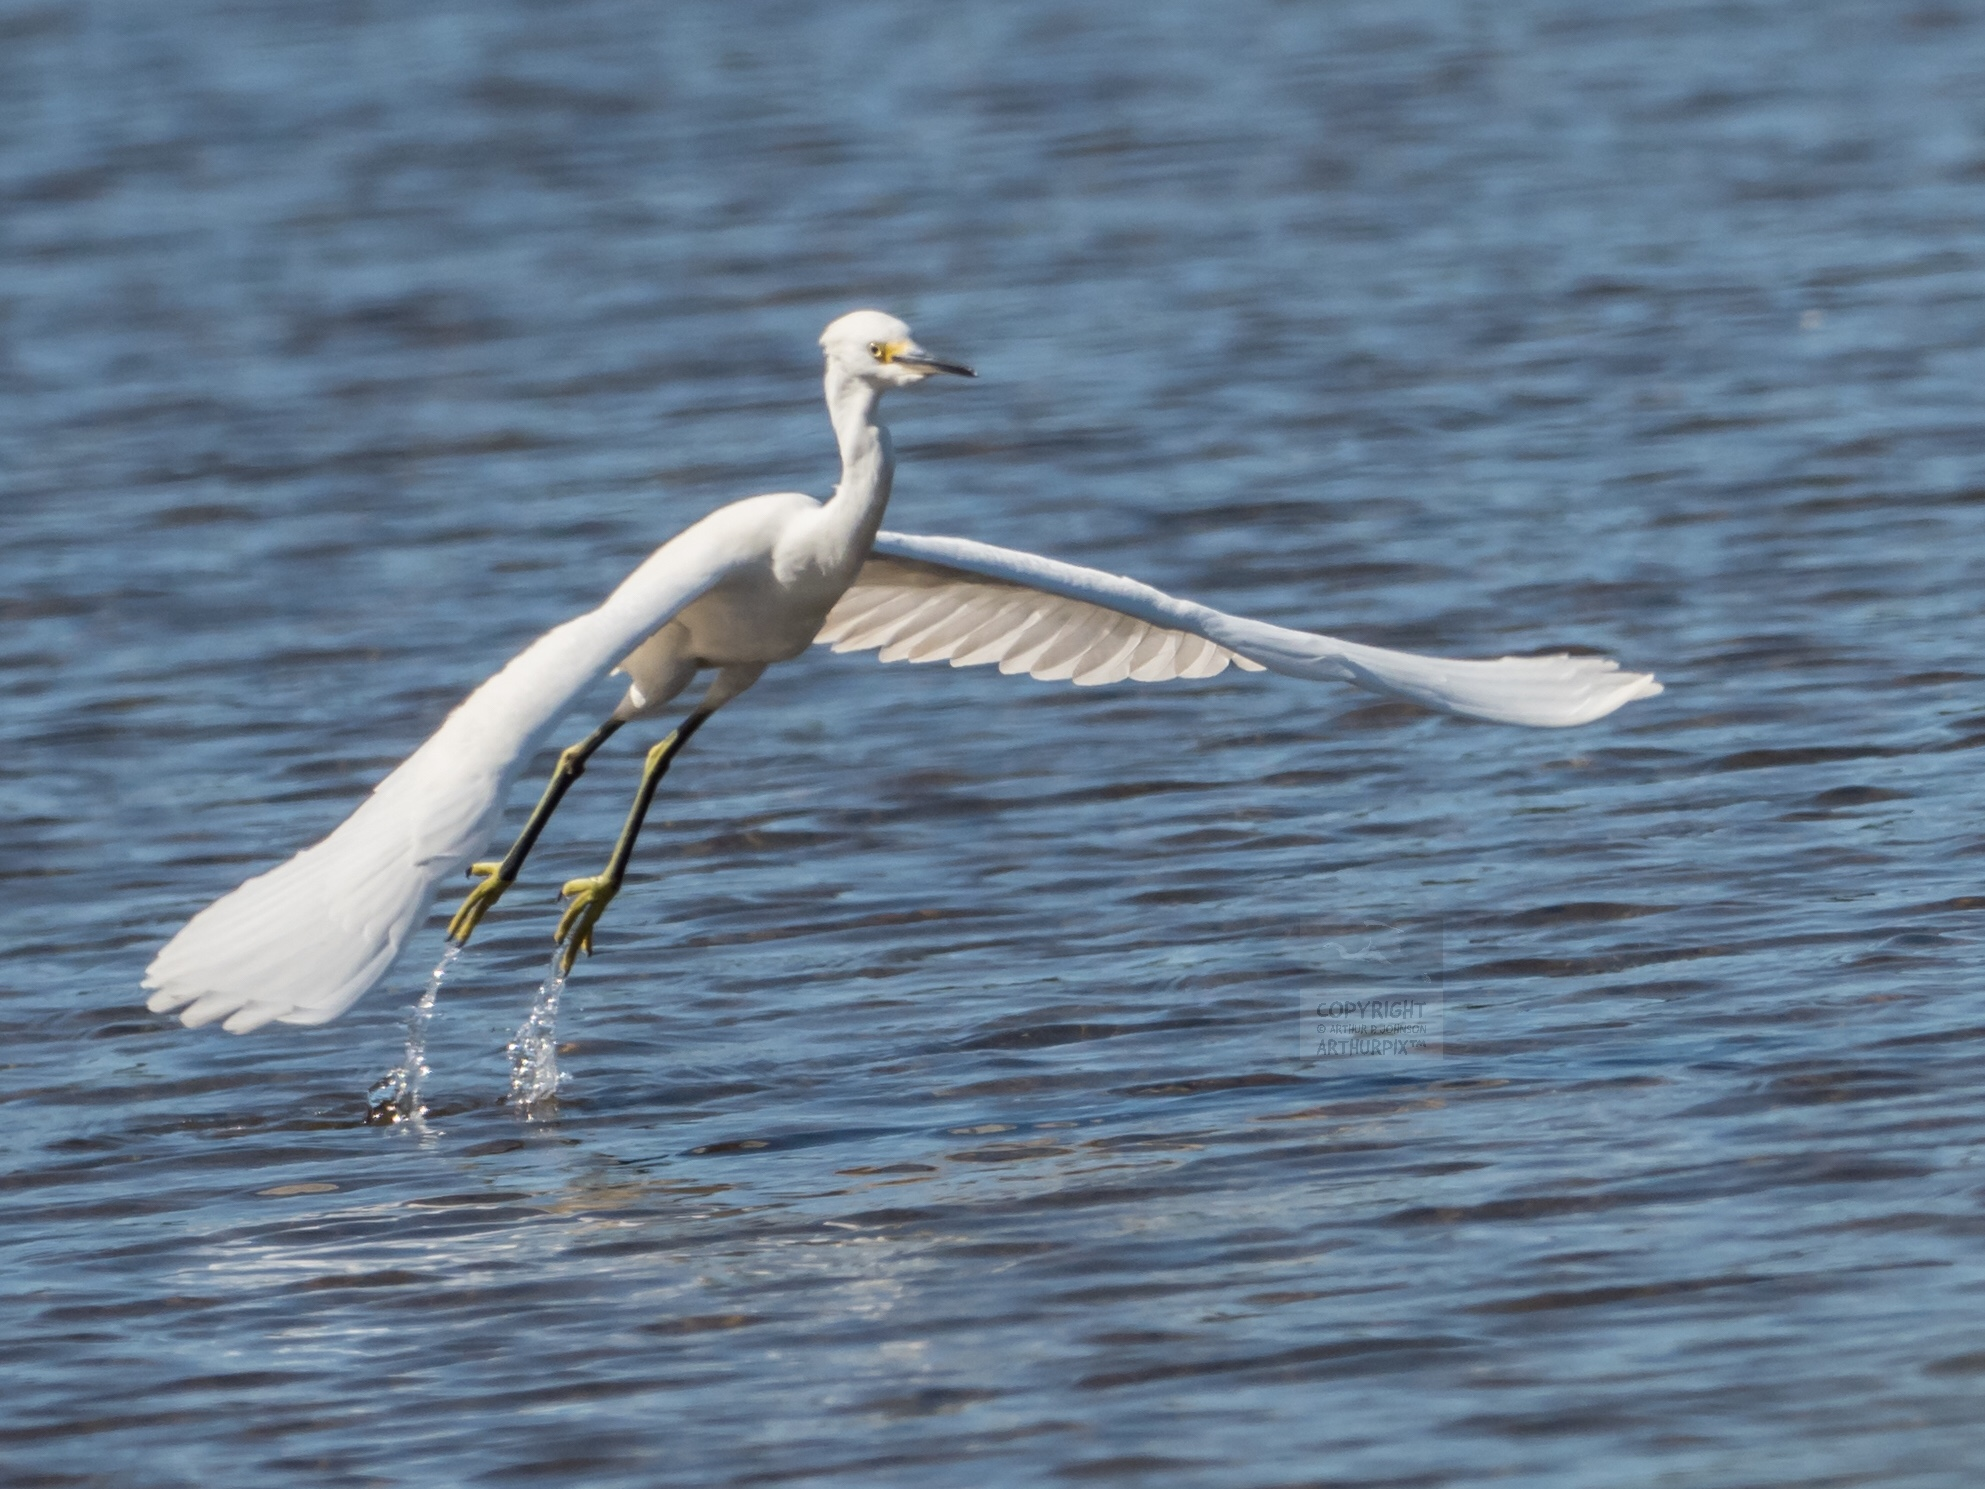 Juvenile Great Egret Taking Flight